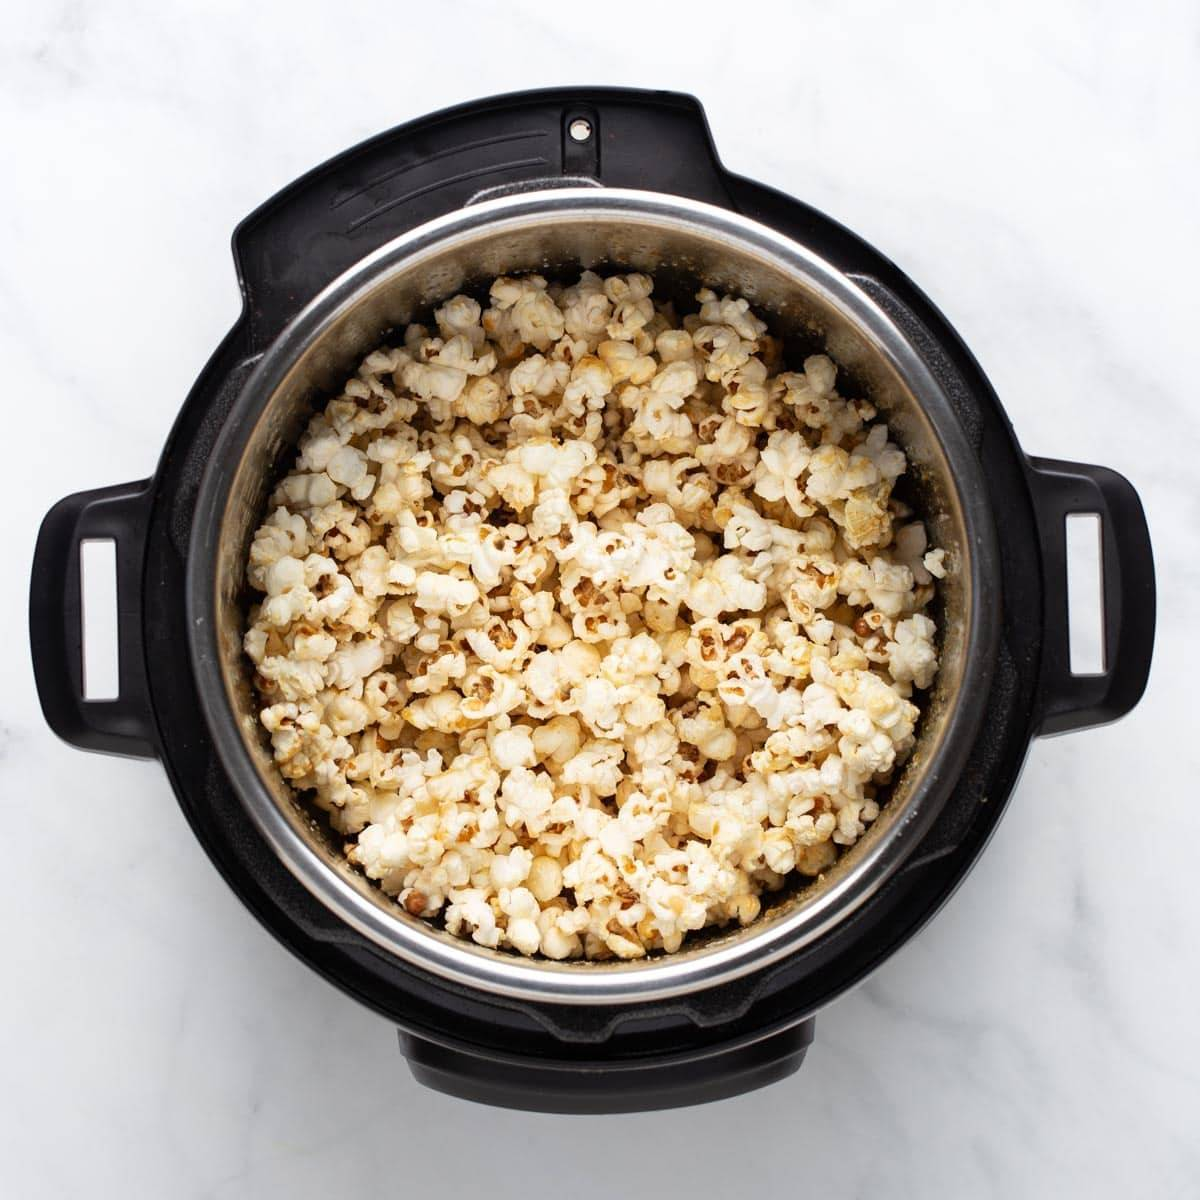 Popcorn in the Instant Pot.